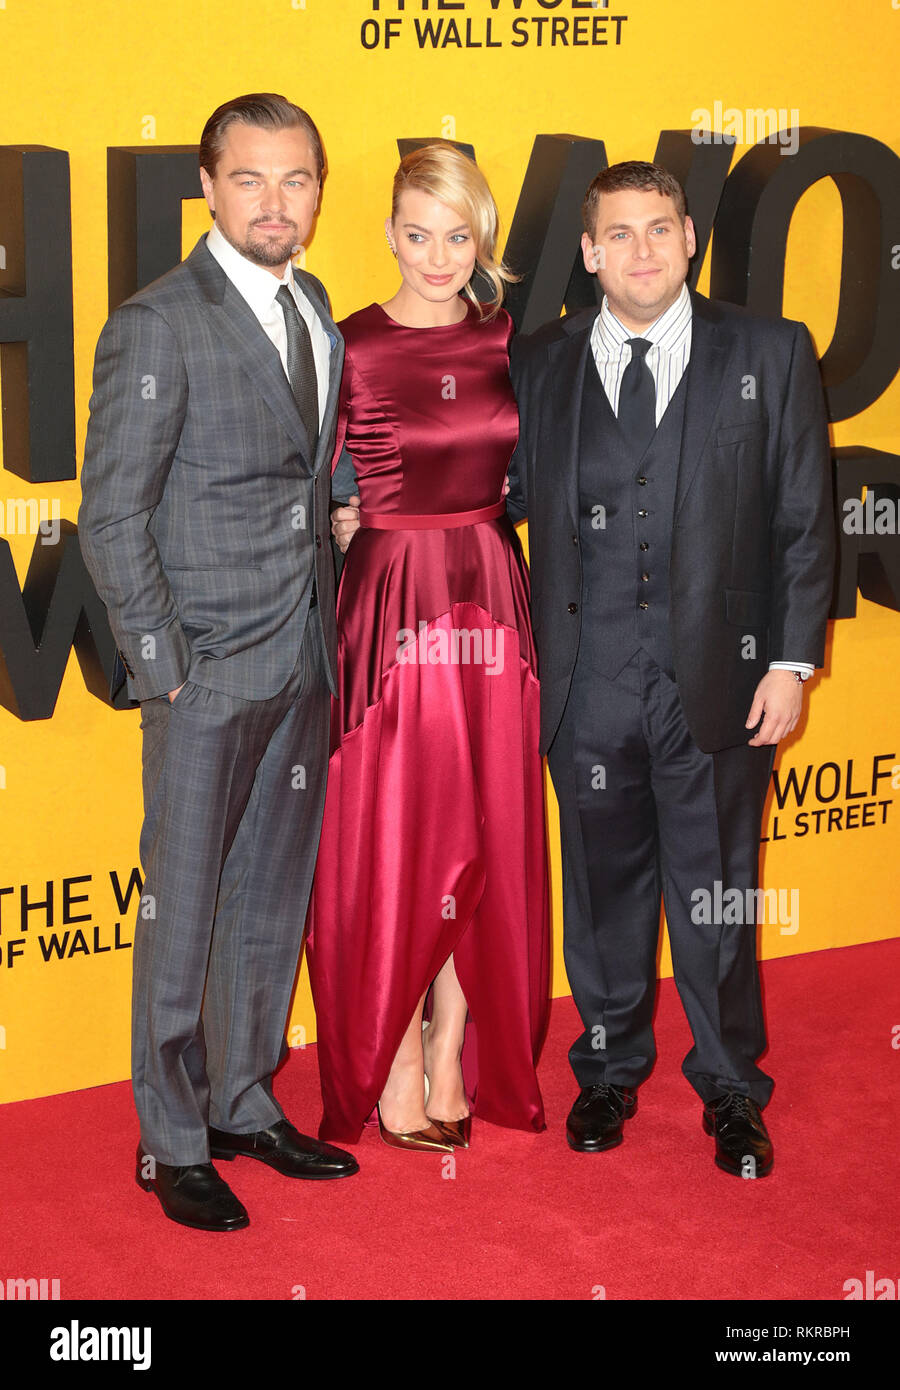 The Wolf Of Wall Street Vo : street, Street, Margot, Robbie, Resolution, Stock, Photography, Images, Alamy